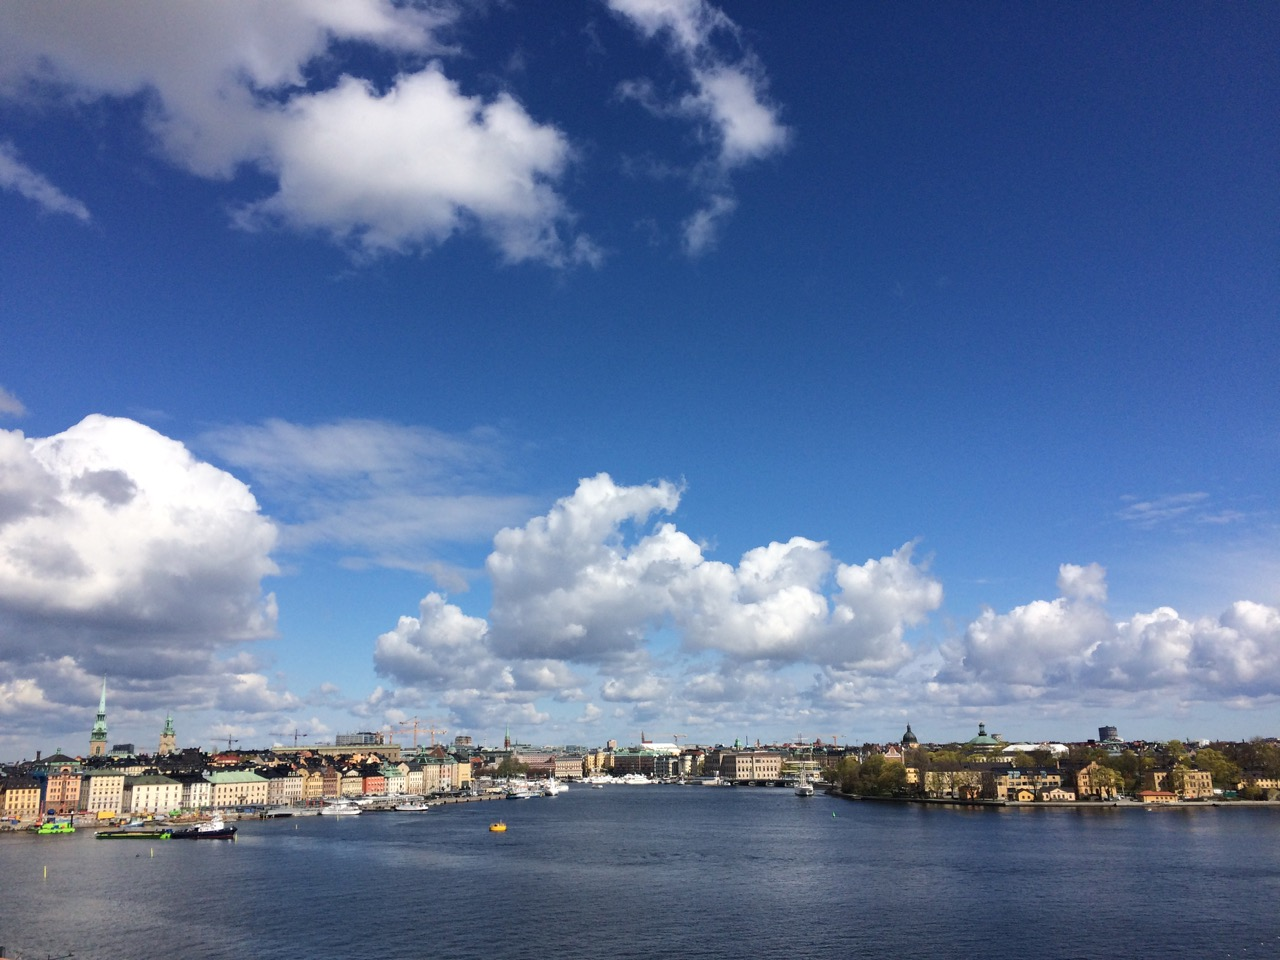 10 Things I Didn't Know About Stockholm